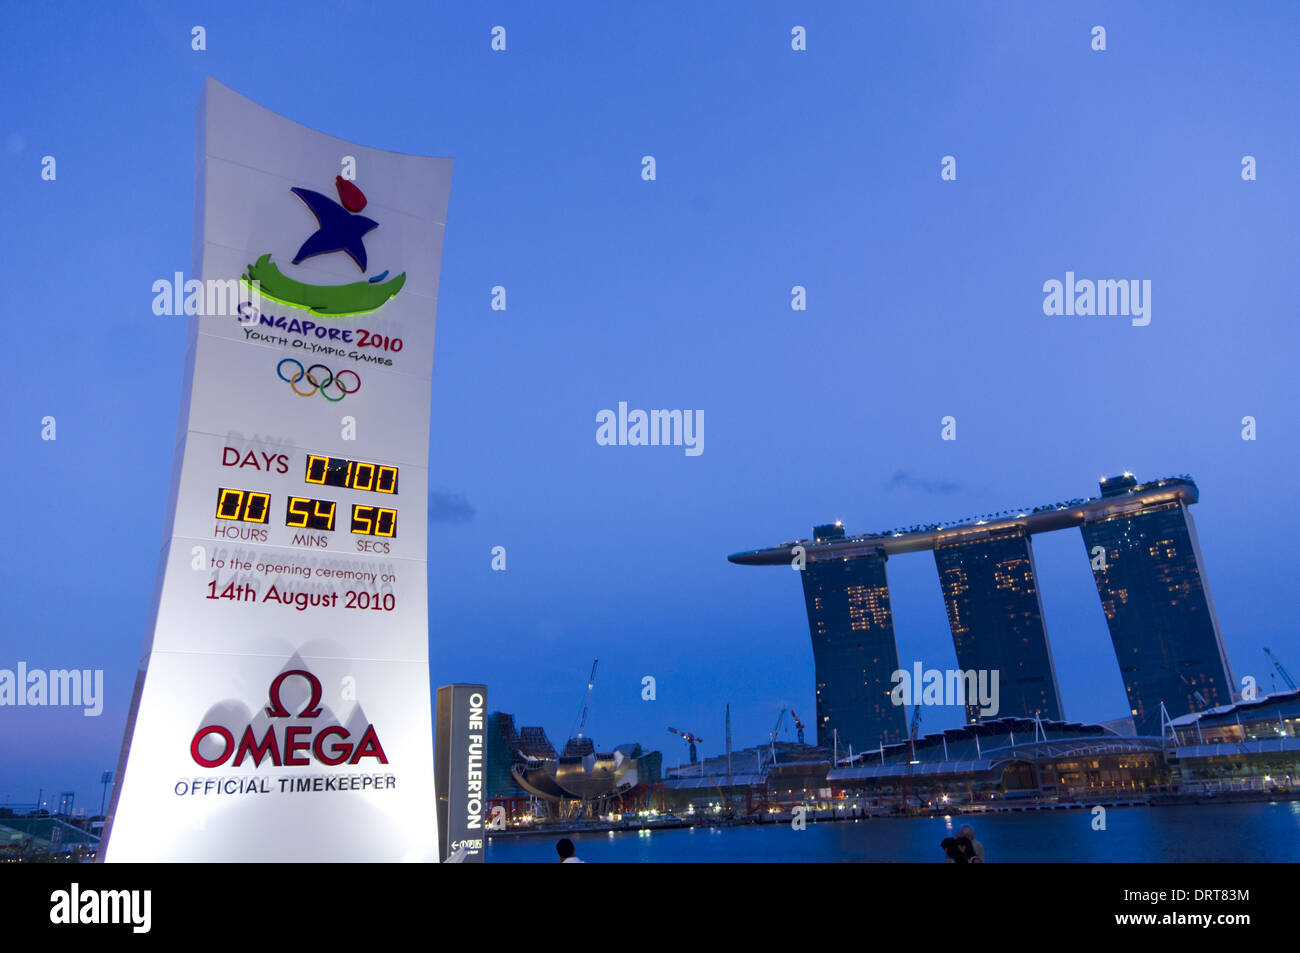 Youth olympic games, singapore 2010 - Stock Image